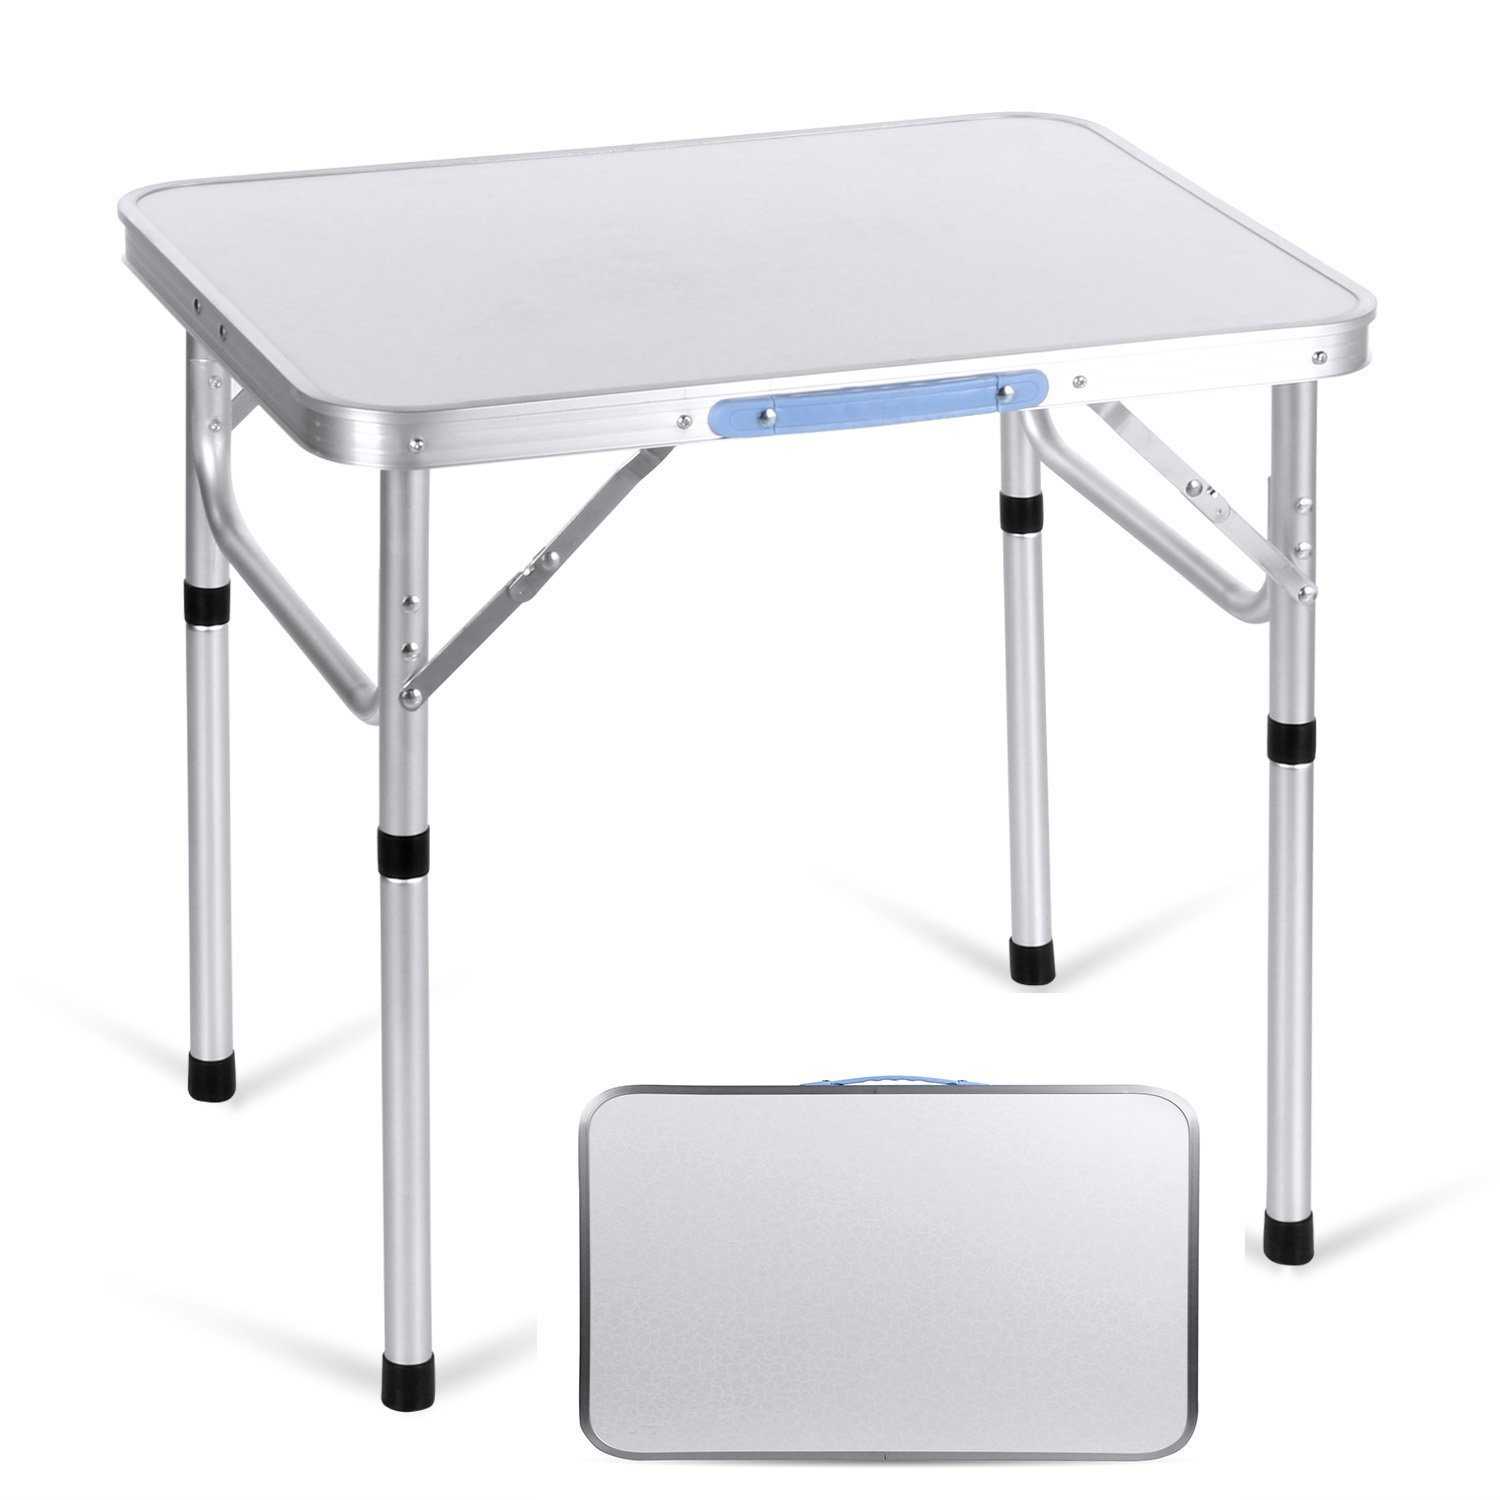 Kemanner Folding Table 2ft Camping Picnic Table Height Adjustable Portable Outdoor Party Dining Aluminum Table with Carrying Handle(US Stock) (Silver)